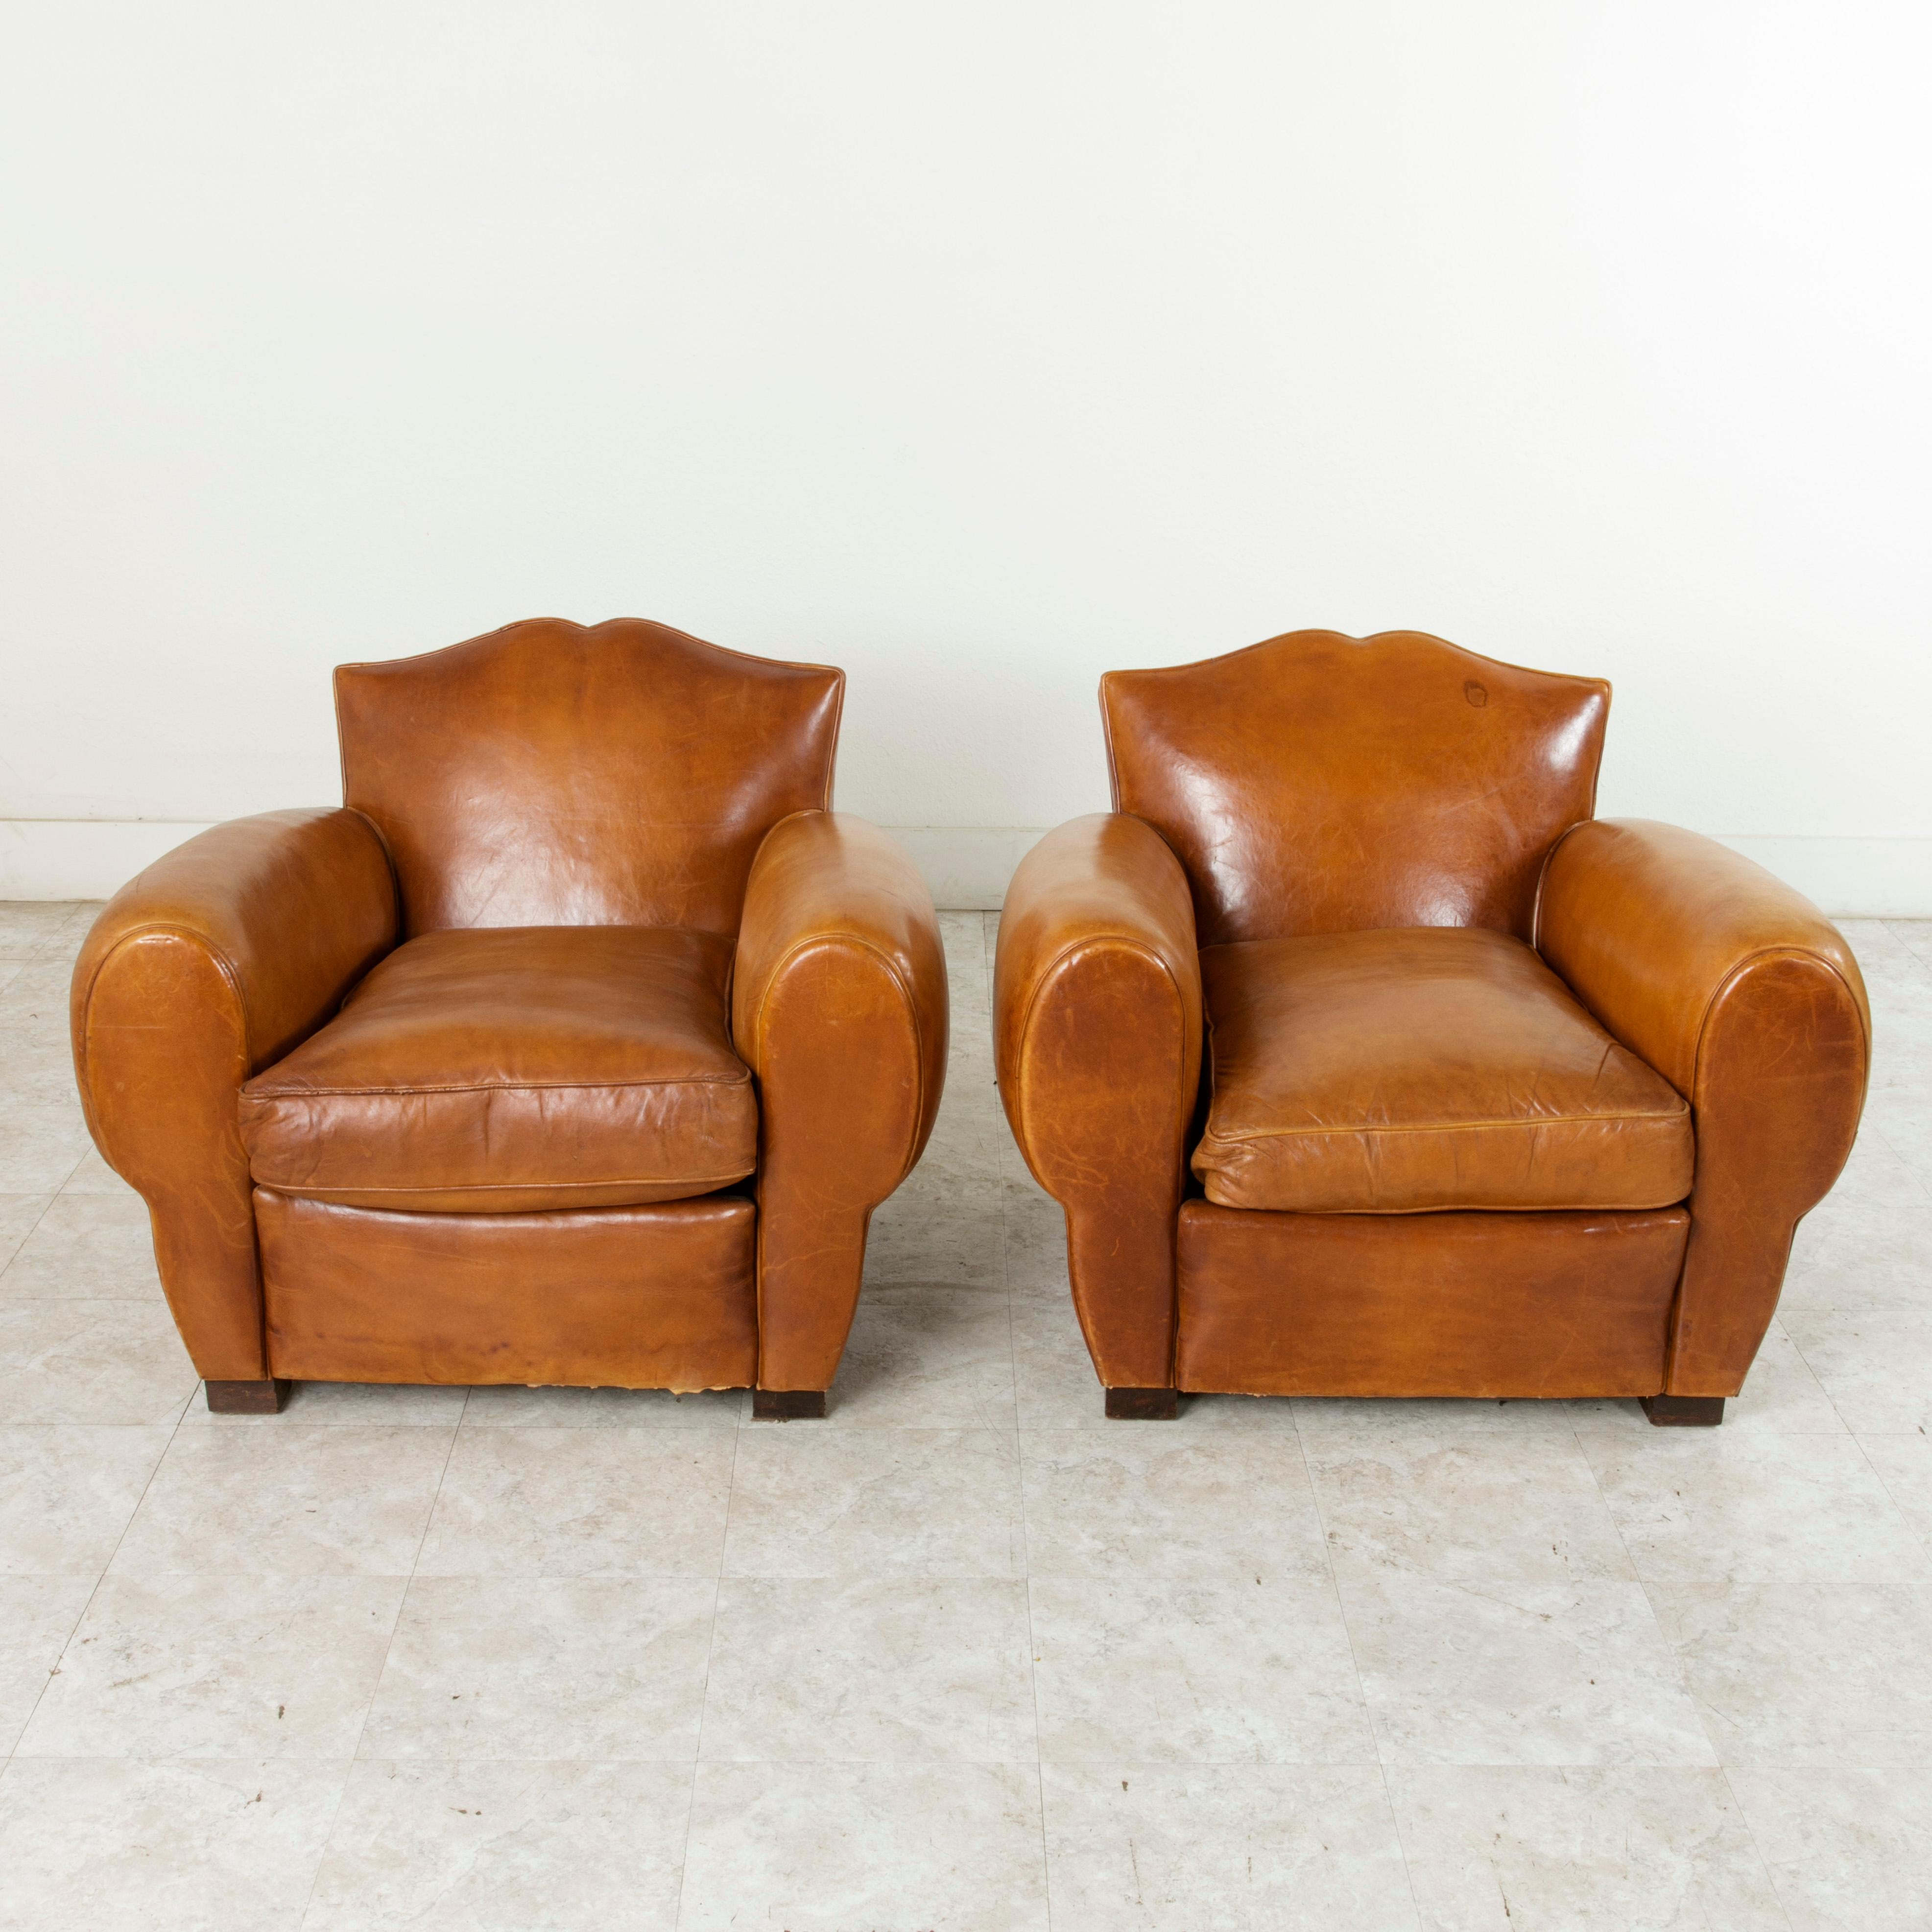 Art deco period furniture Roaring Twenties This Pair Of Mid20th Century French Art Deco Period Moustache Back Club Chairs Are 1stdibs Pair Of French Art Deco Period Leather Moustache Club Chairs Circa